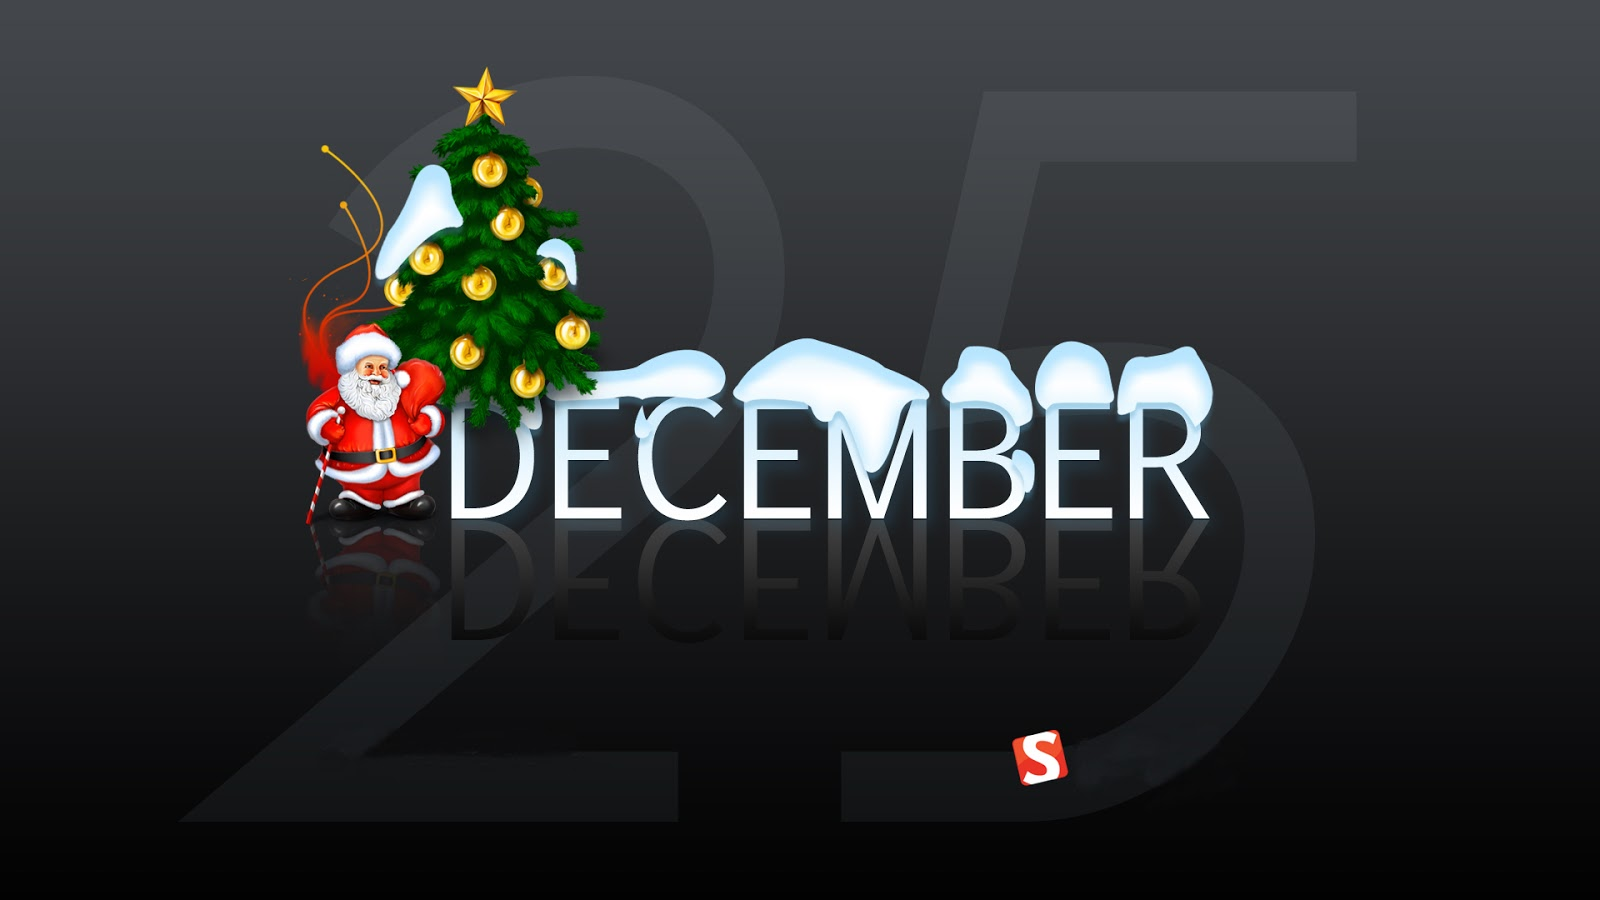 december wallpapers hd hd wallpapers backgrounds